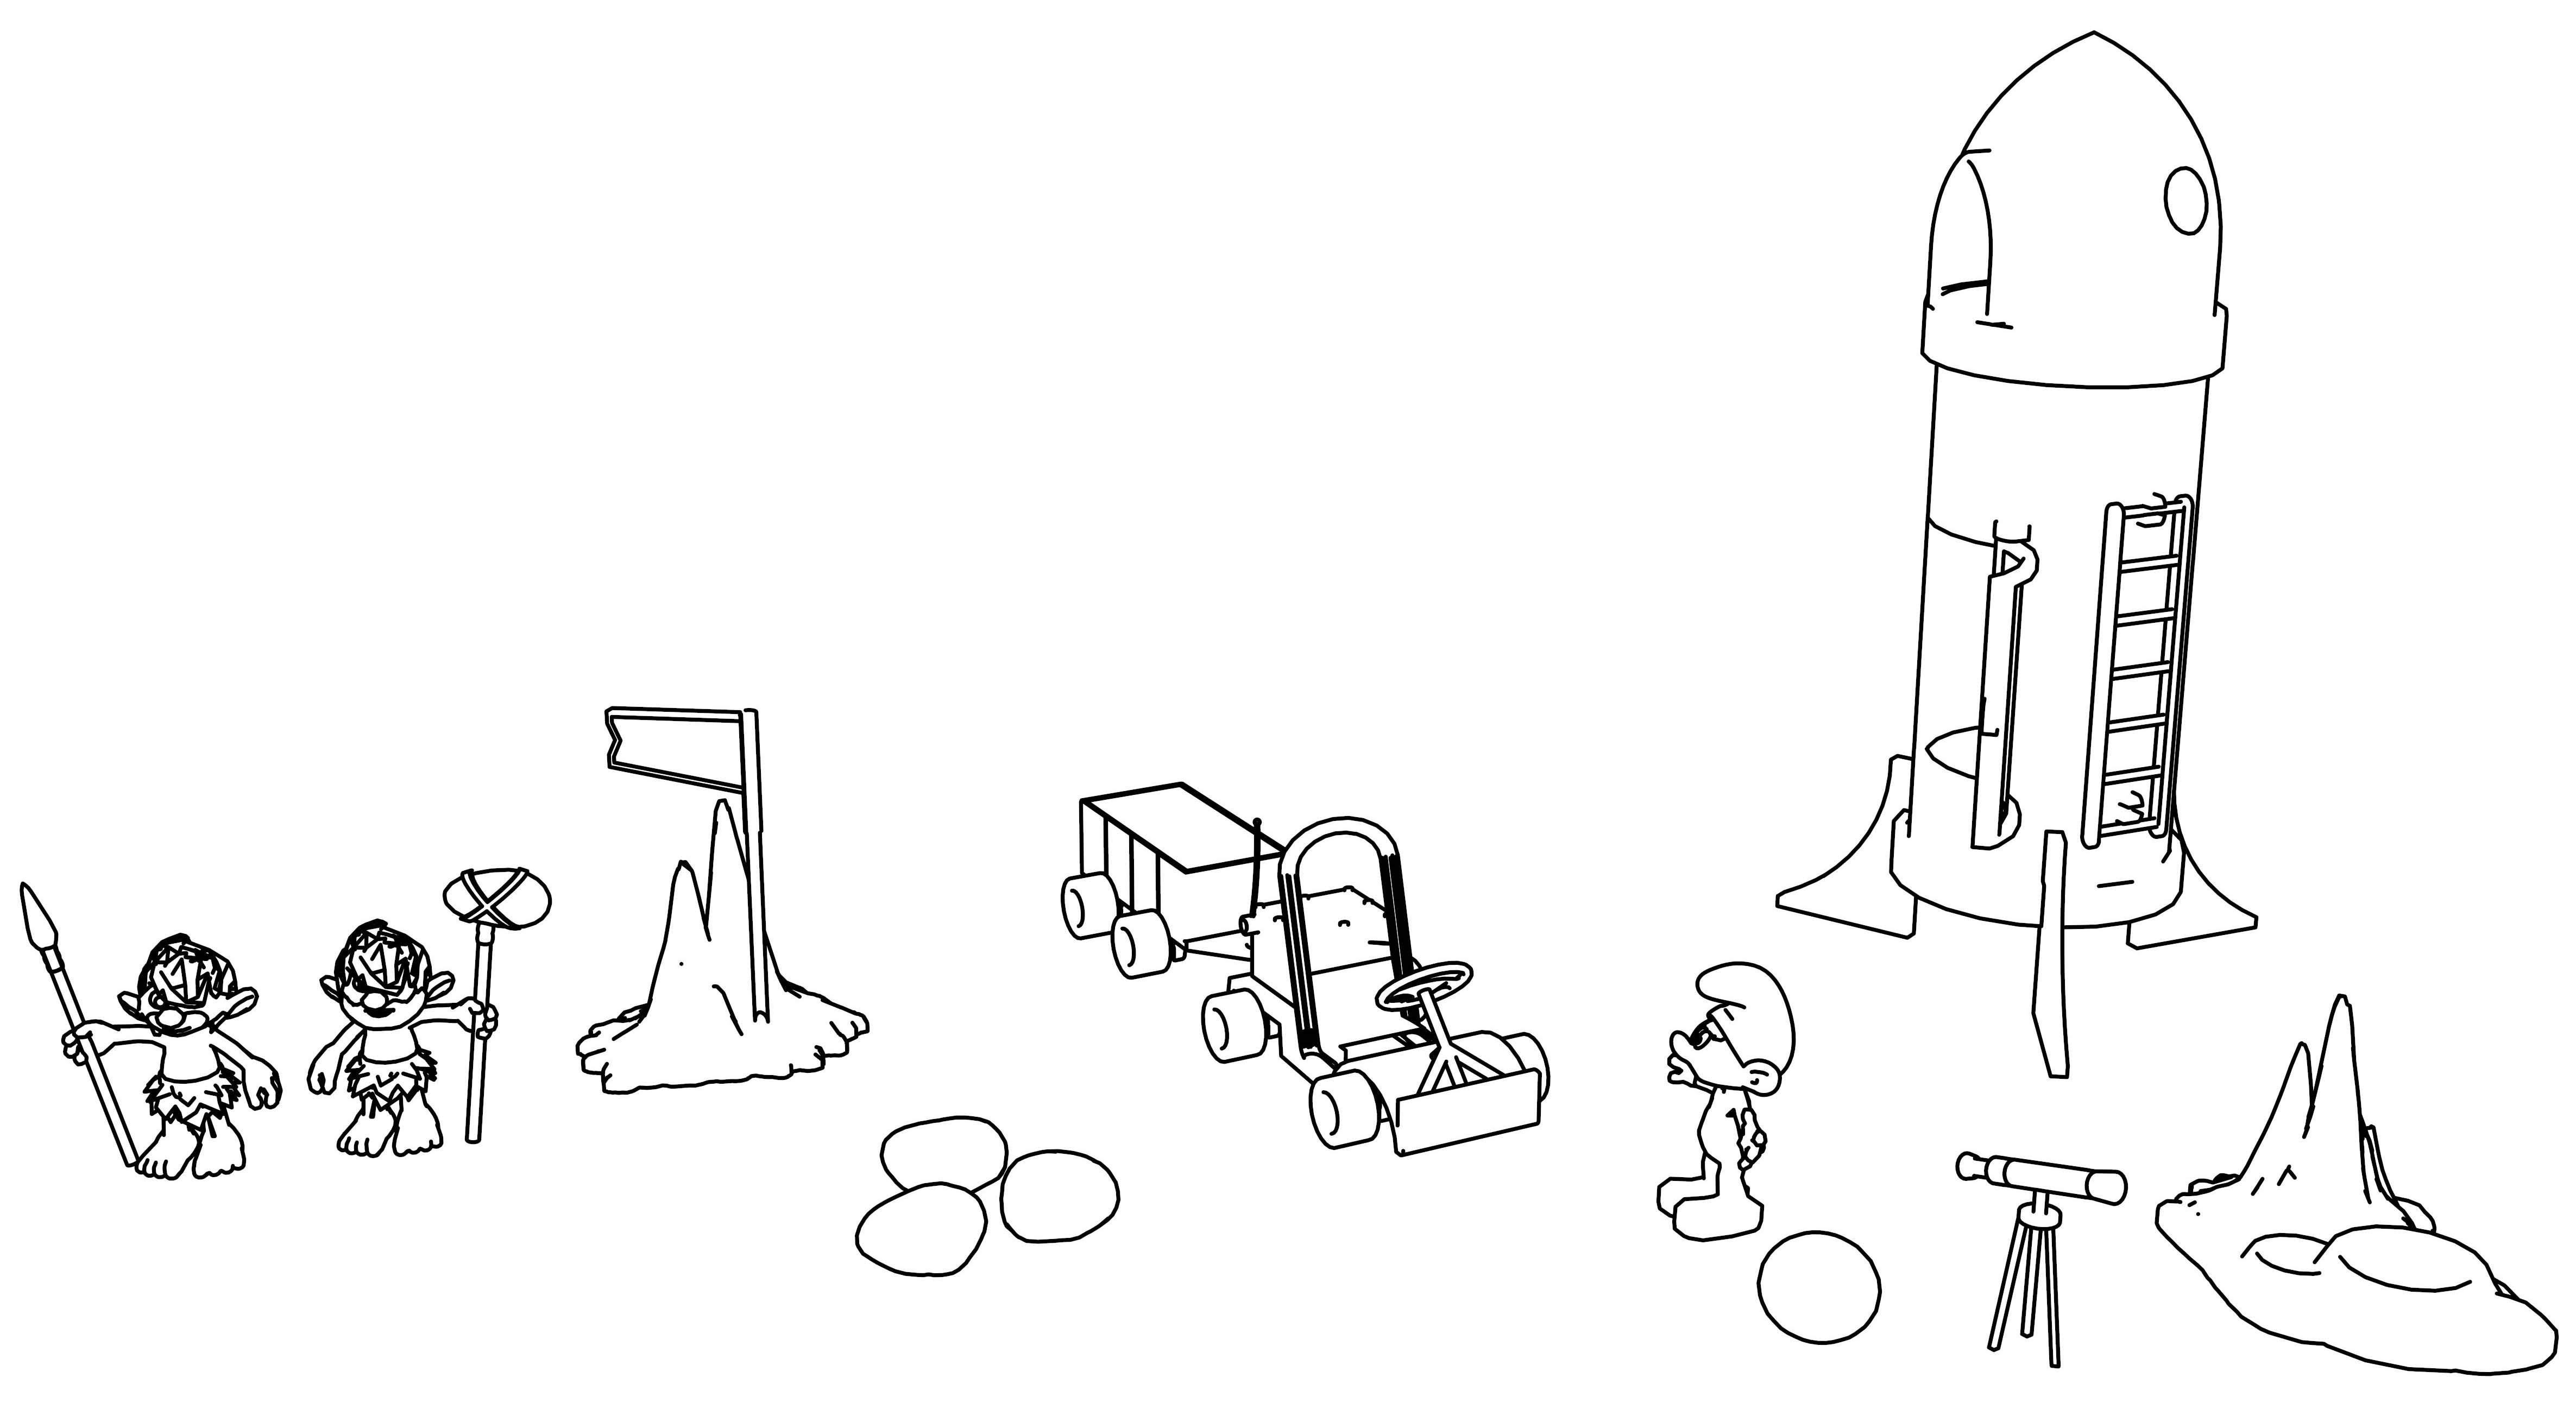 Astro Smurf On The Planet Space Coloring Page